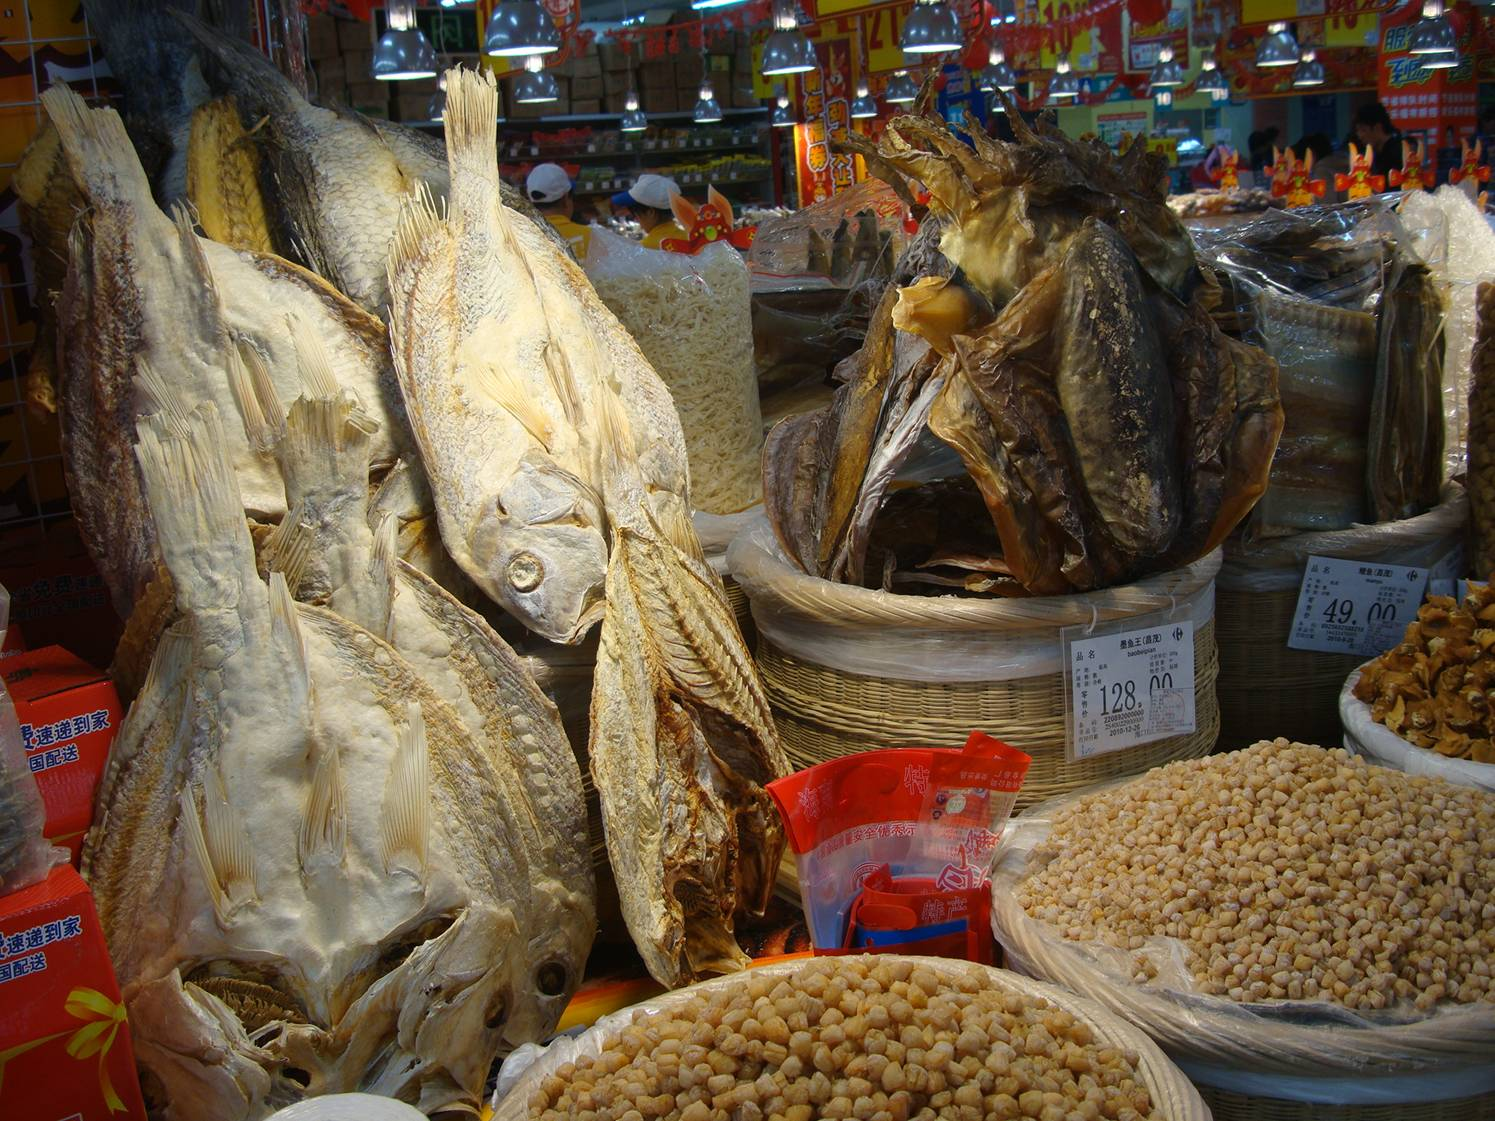 Picture: An impressive array of large dried fish in the supermarket in Haikou, Hainan Island, China